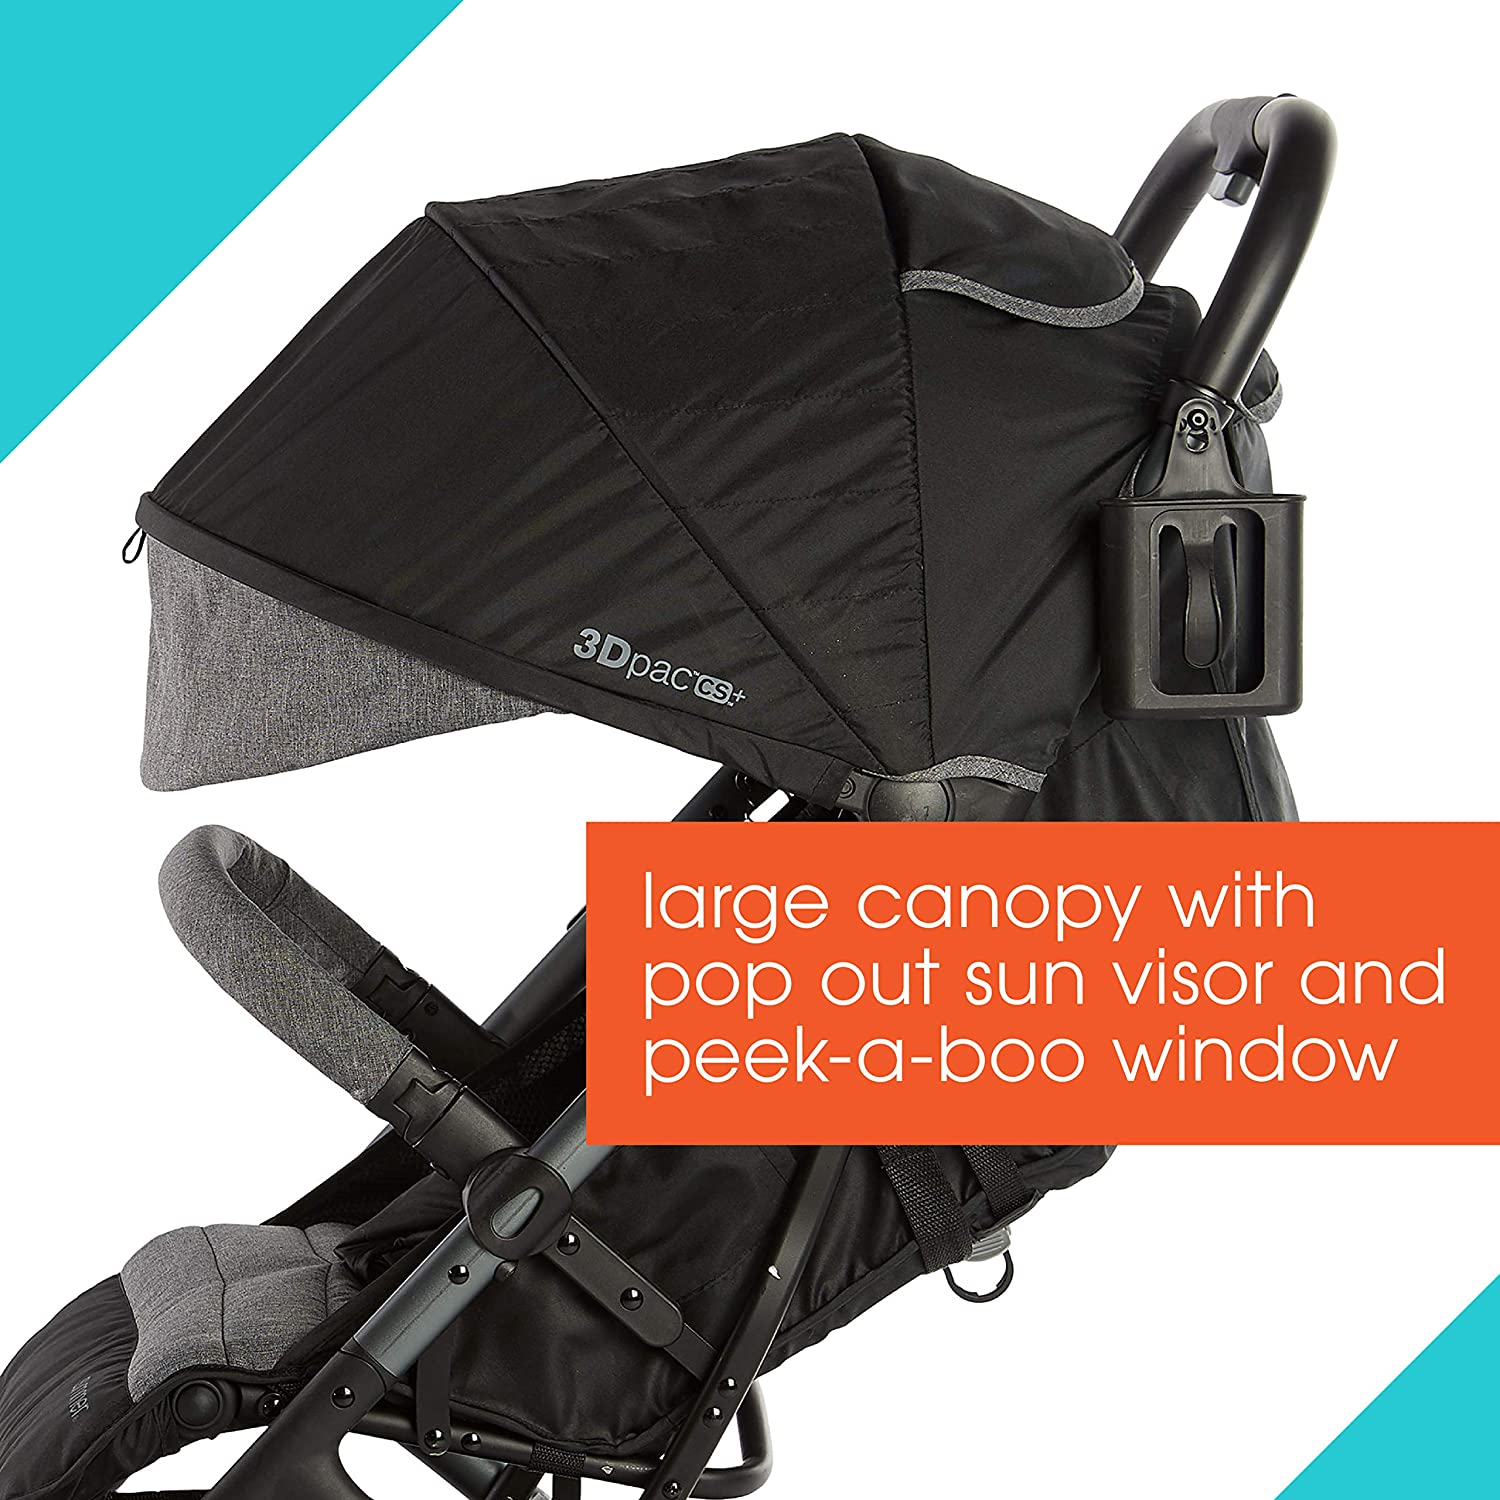 Summer 3Dpac CS+ Compact Fold Stroller, Black - Compact Car Seat Adaptable Baby Stroller - Lightweight Stroller with Convenient One-Hand Fold, Reclining Seat and Extra-Large Canopy